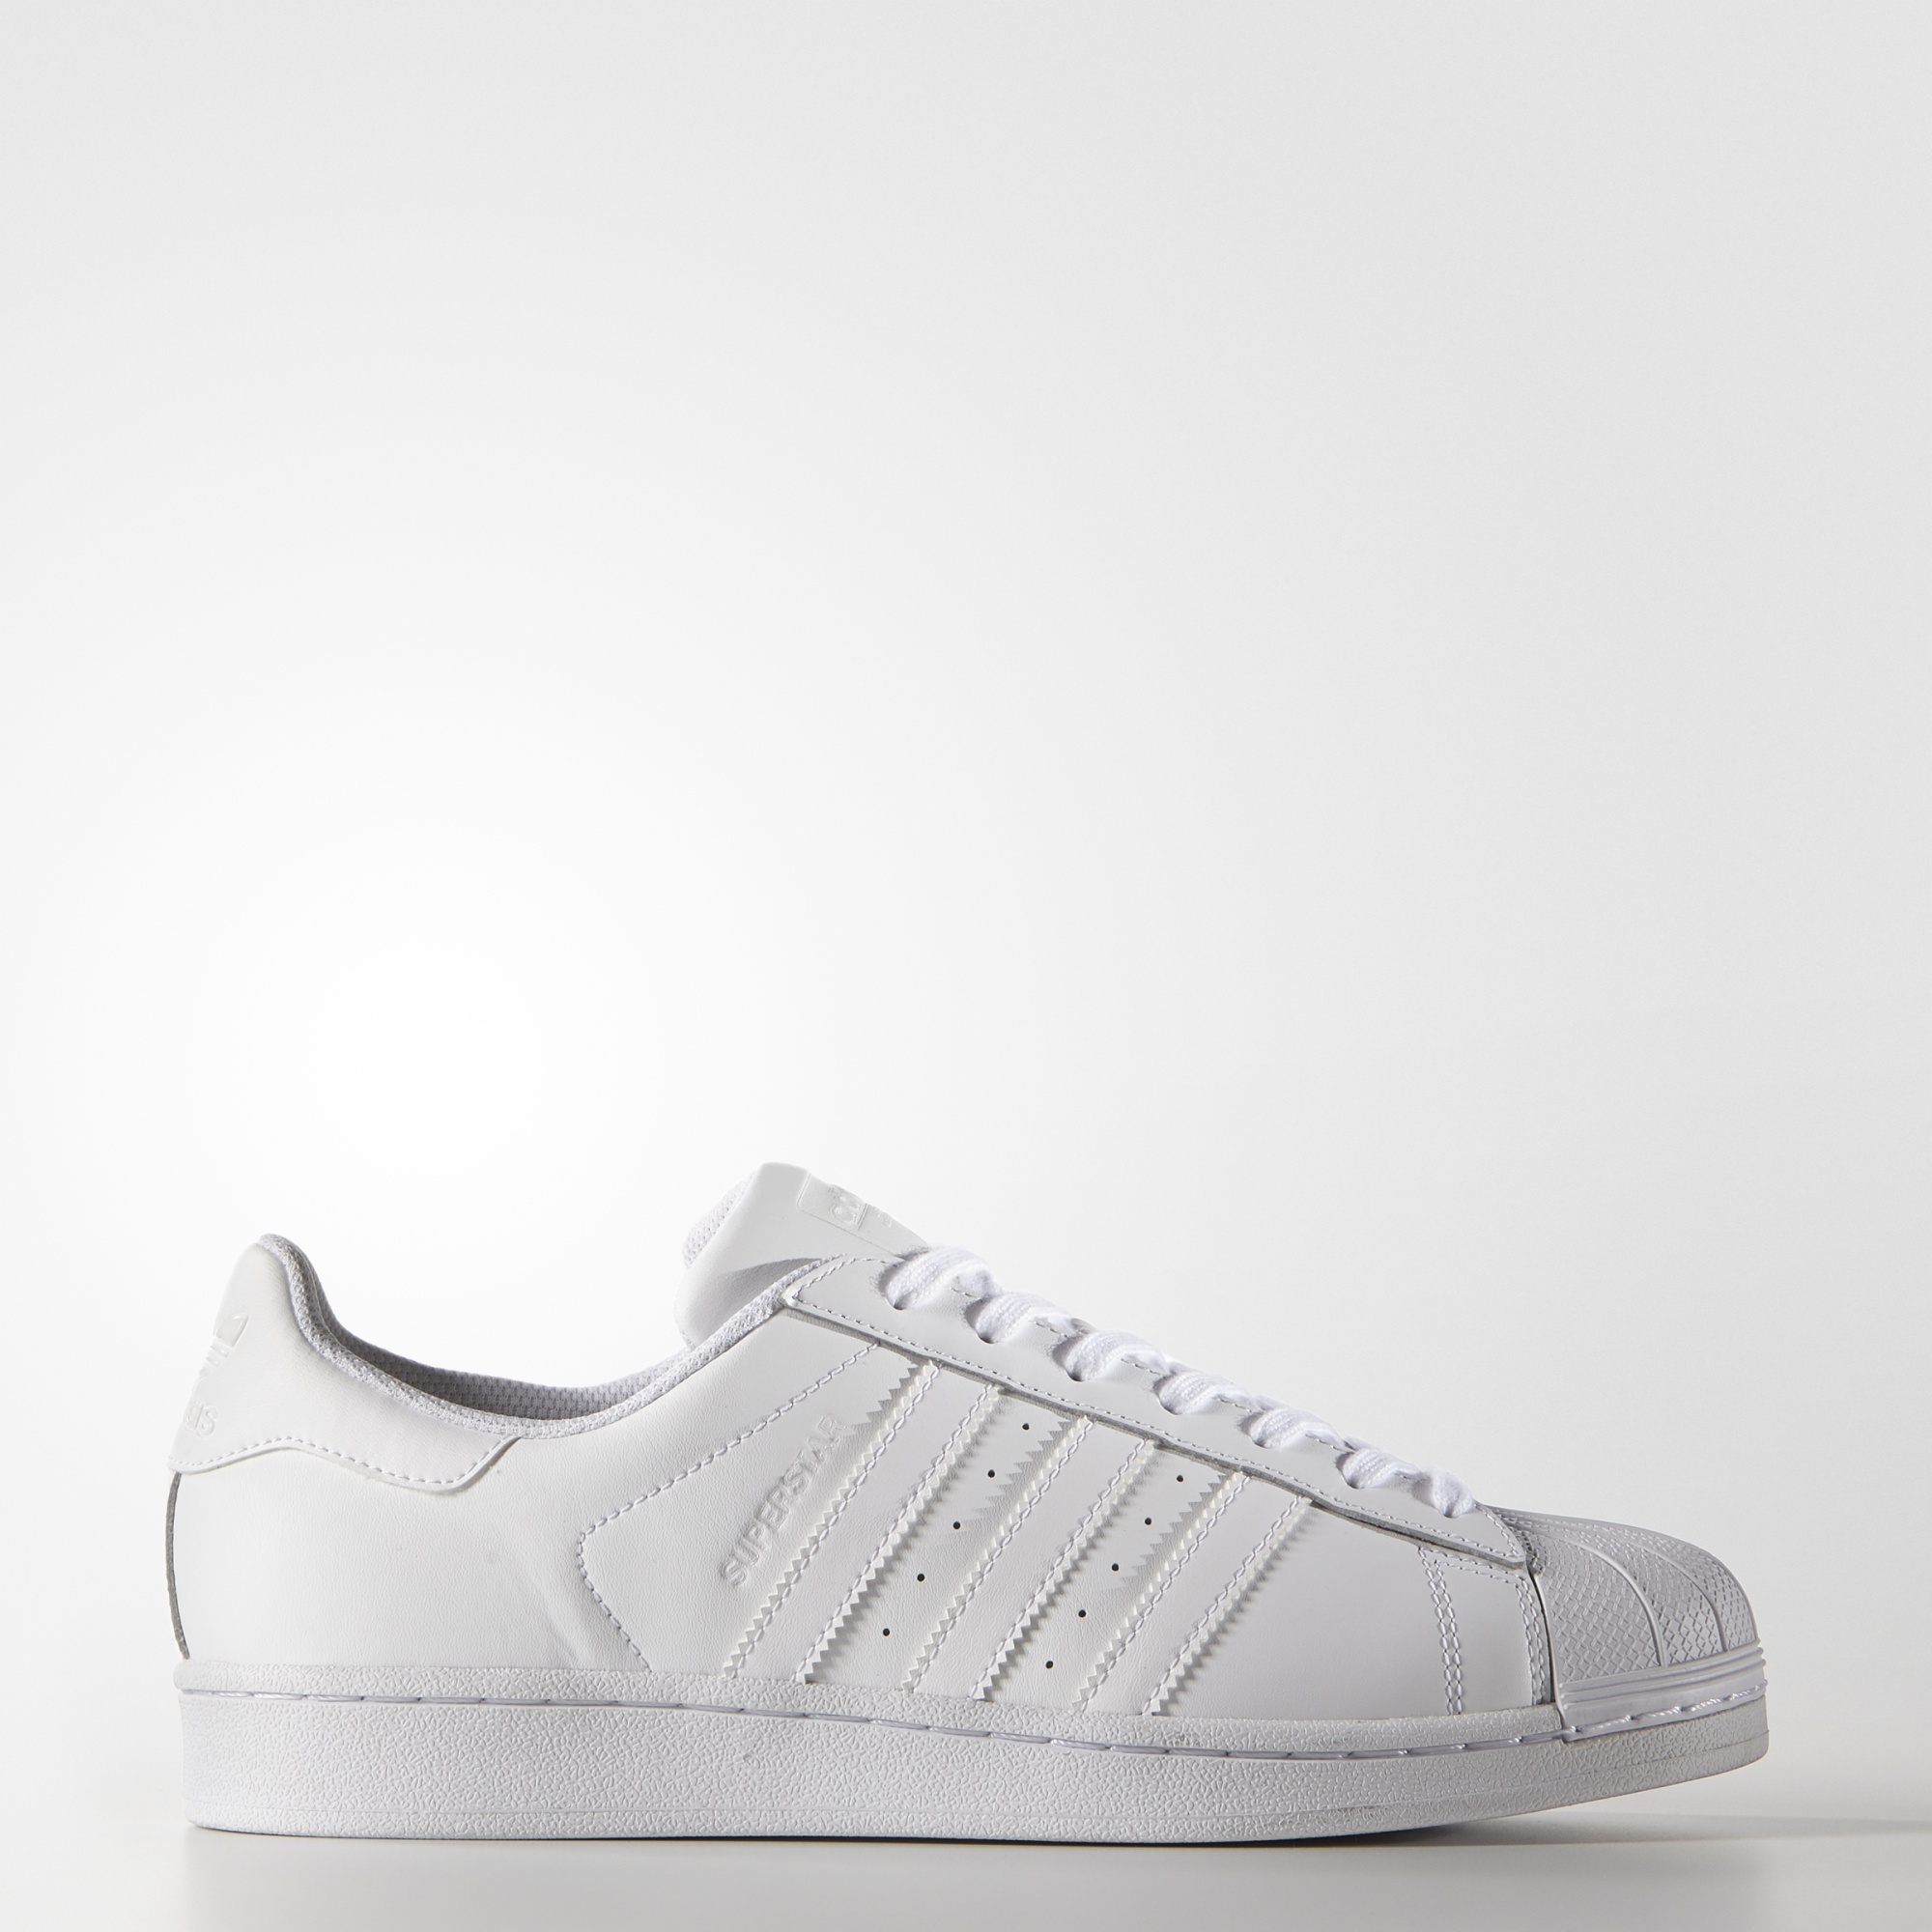 shoes, adidas superstars, superstar, white shoes, adidas, ombre, grey, white, sneakers, adidas shoes, adidas originals, adidas supercolor, sports shoes, ...